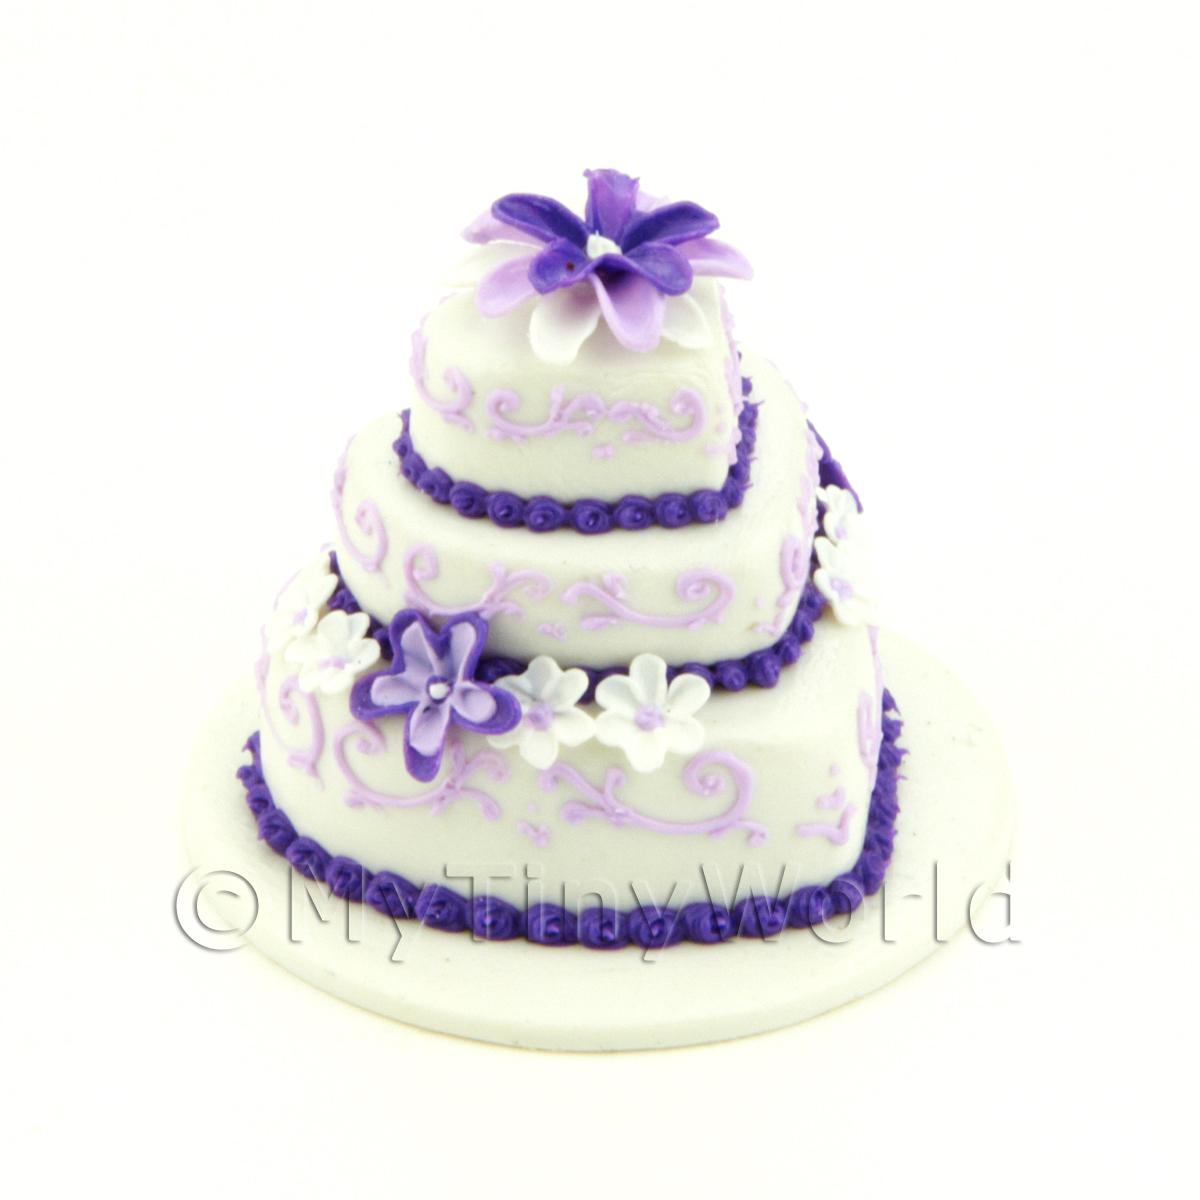 Dolls House Miniature 3 Tier White And Purple Cake With Flowers